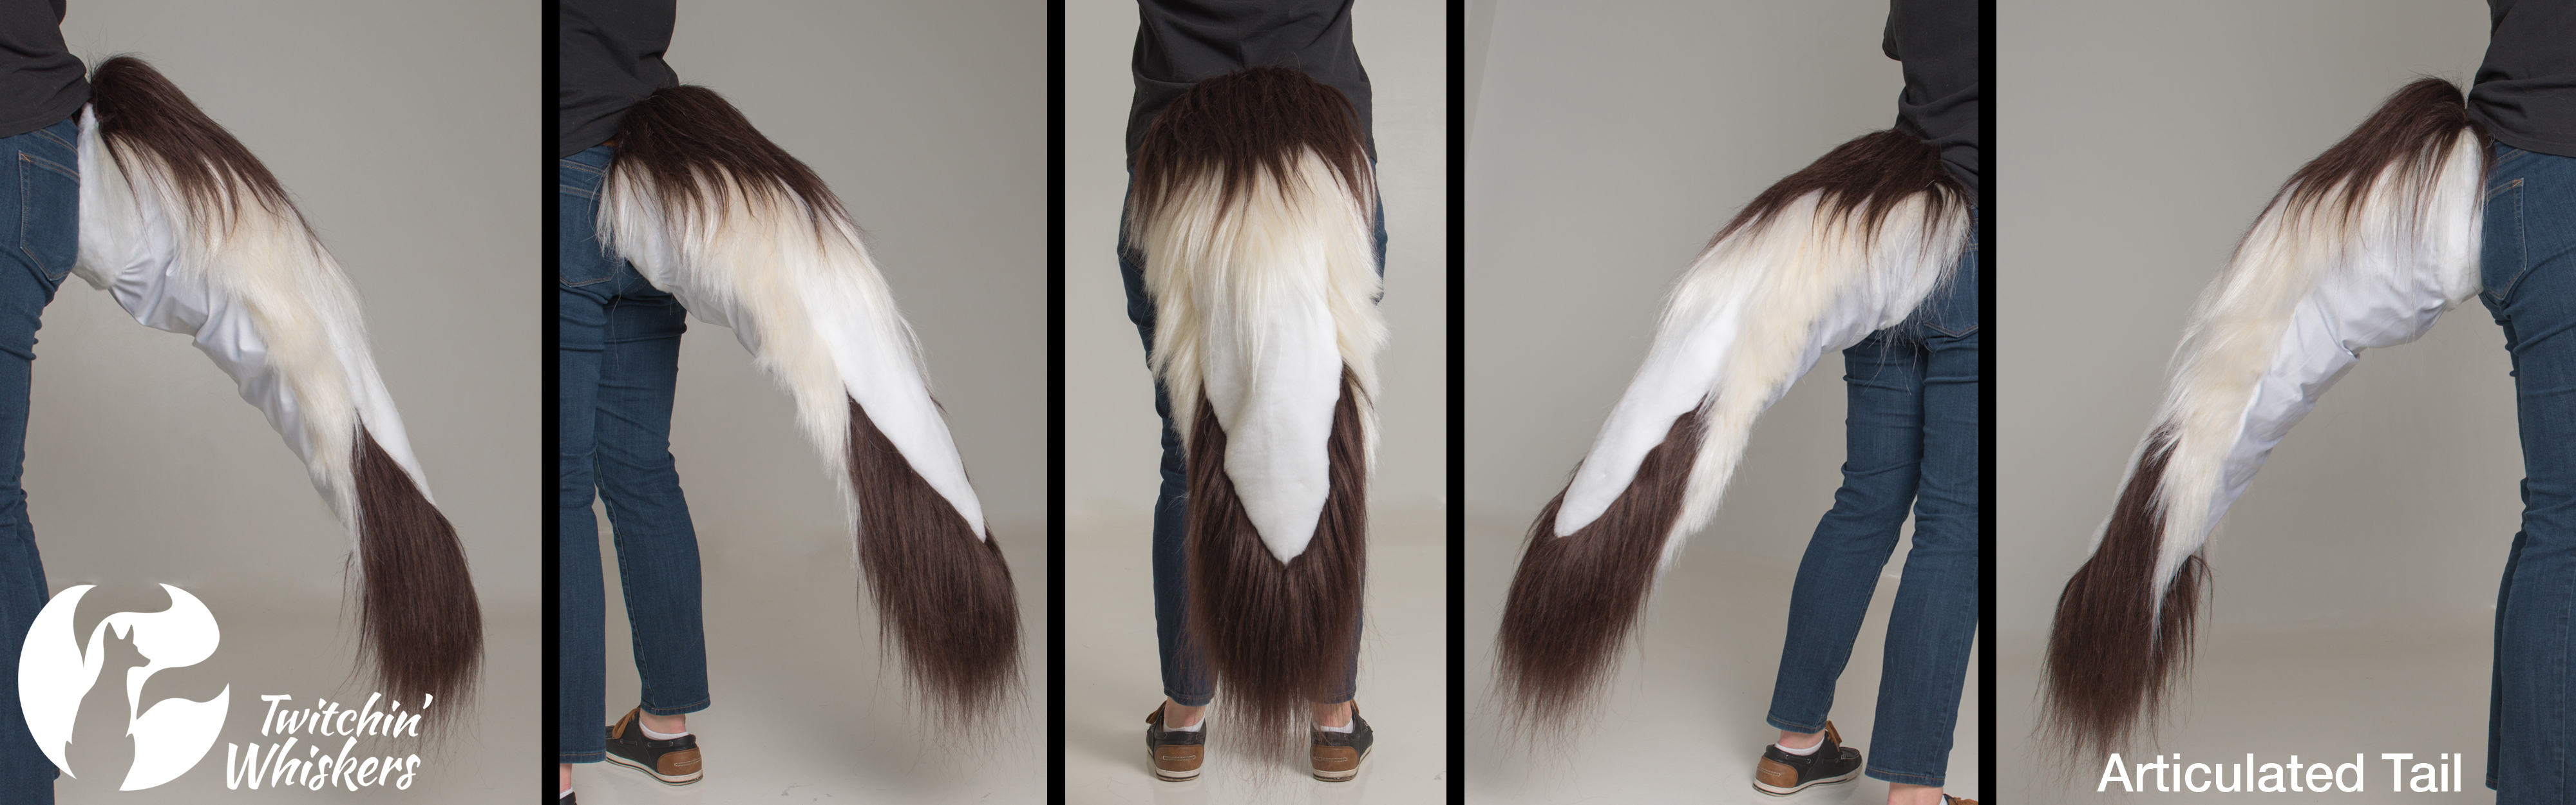 Articulated Tail